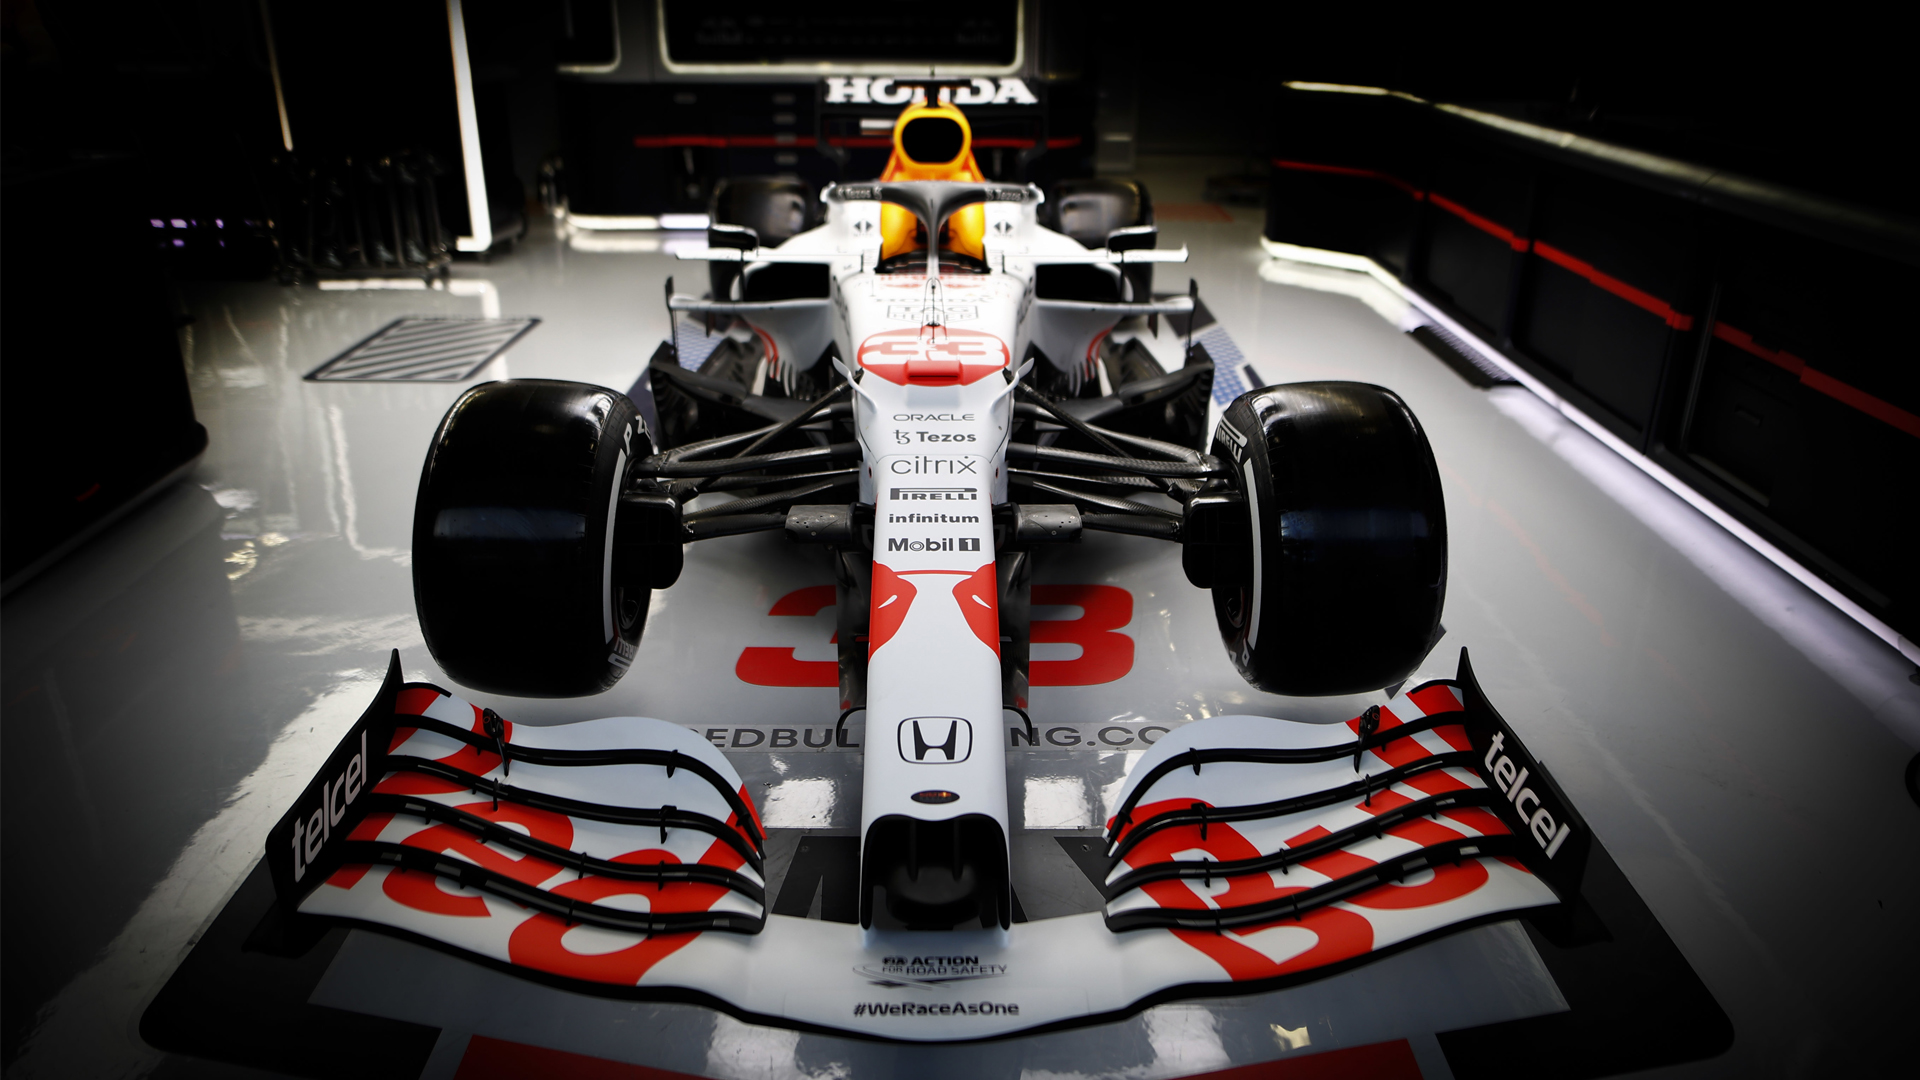 Red Bull Racing's Honda tribute livery is coming to the F1 2021 game